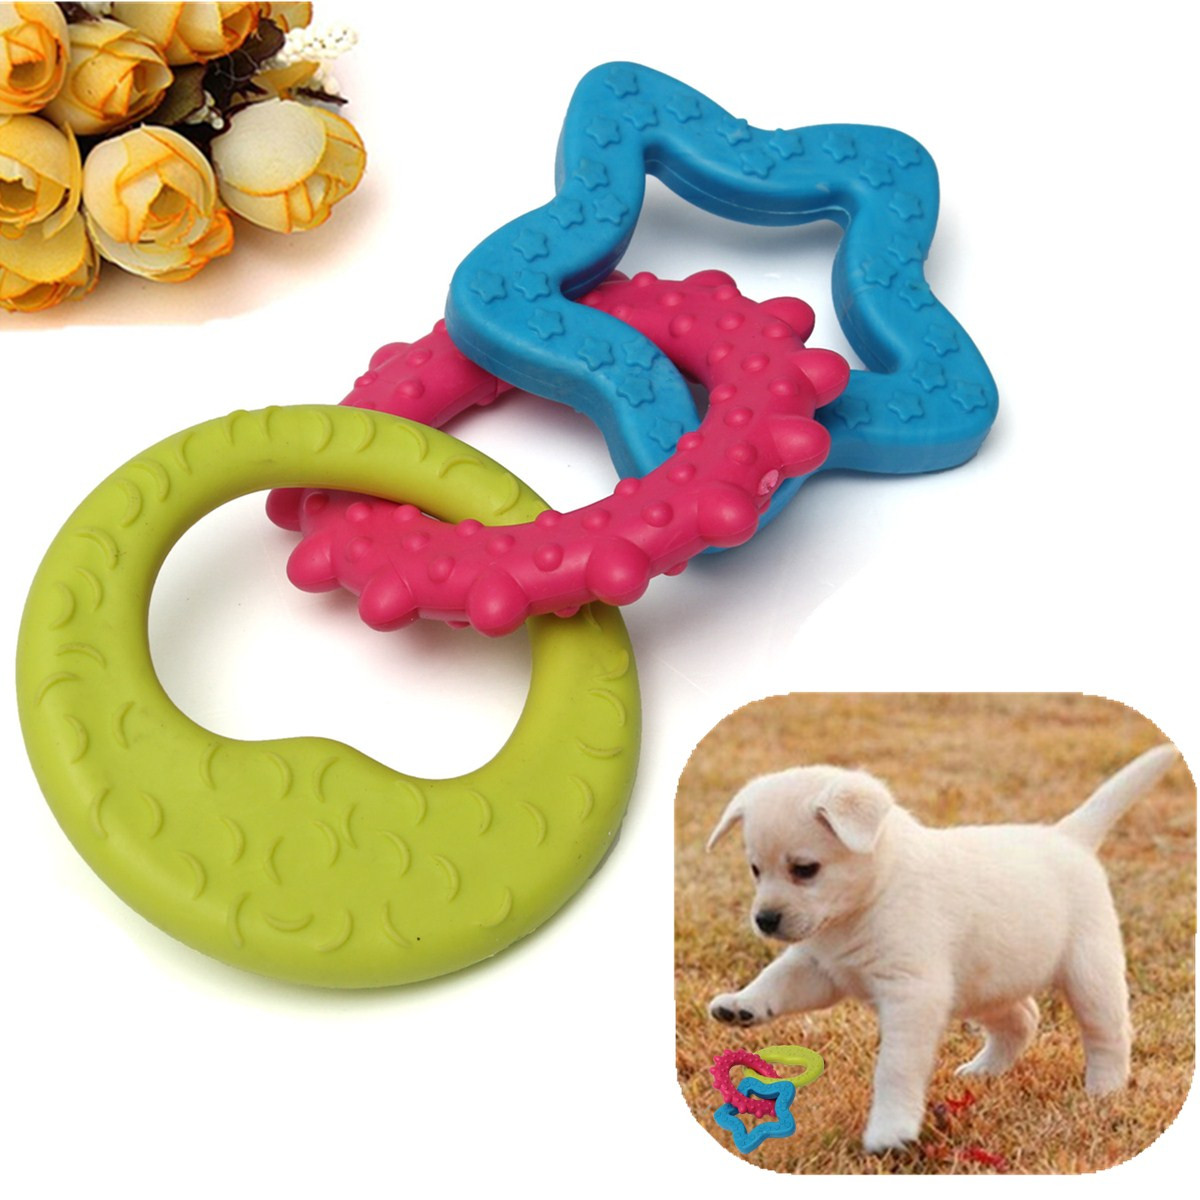 Best ideas about DIY Puppy Teething Toys . Save or Pin Homemade Teething Toys For Puppies – Wow Blog Now.